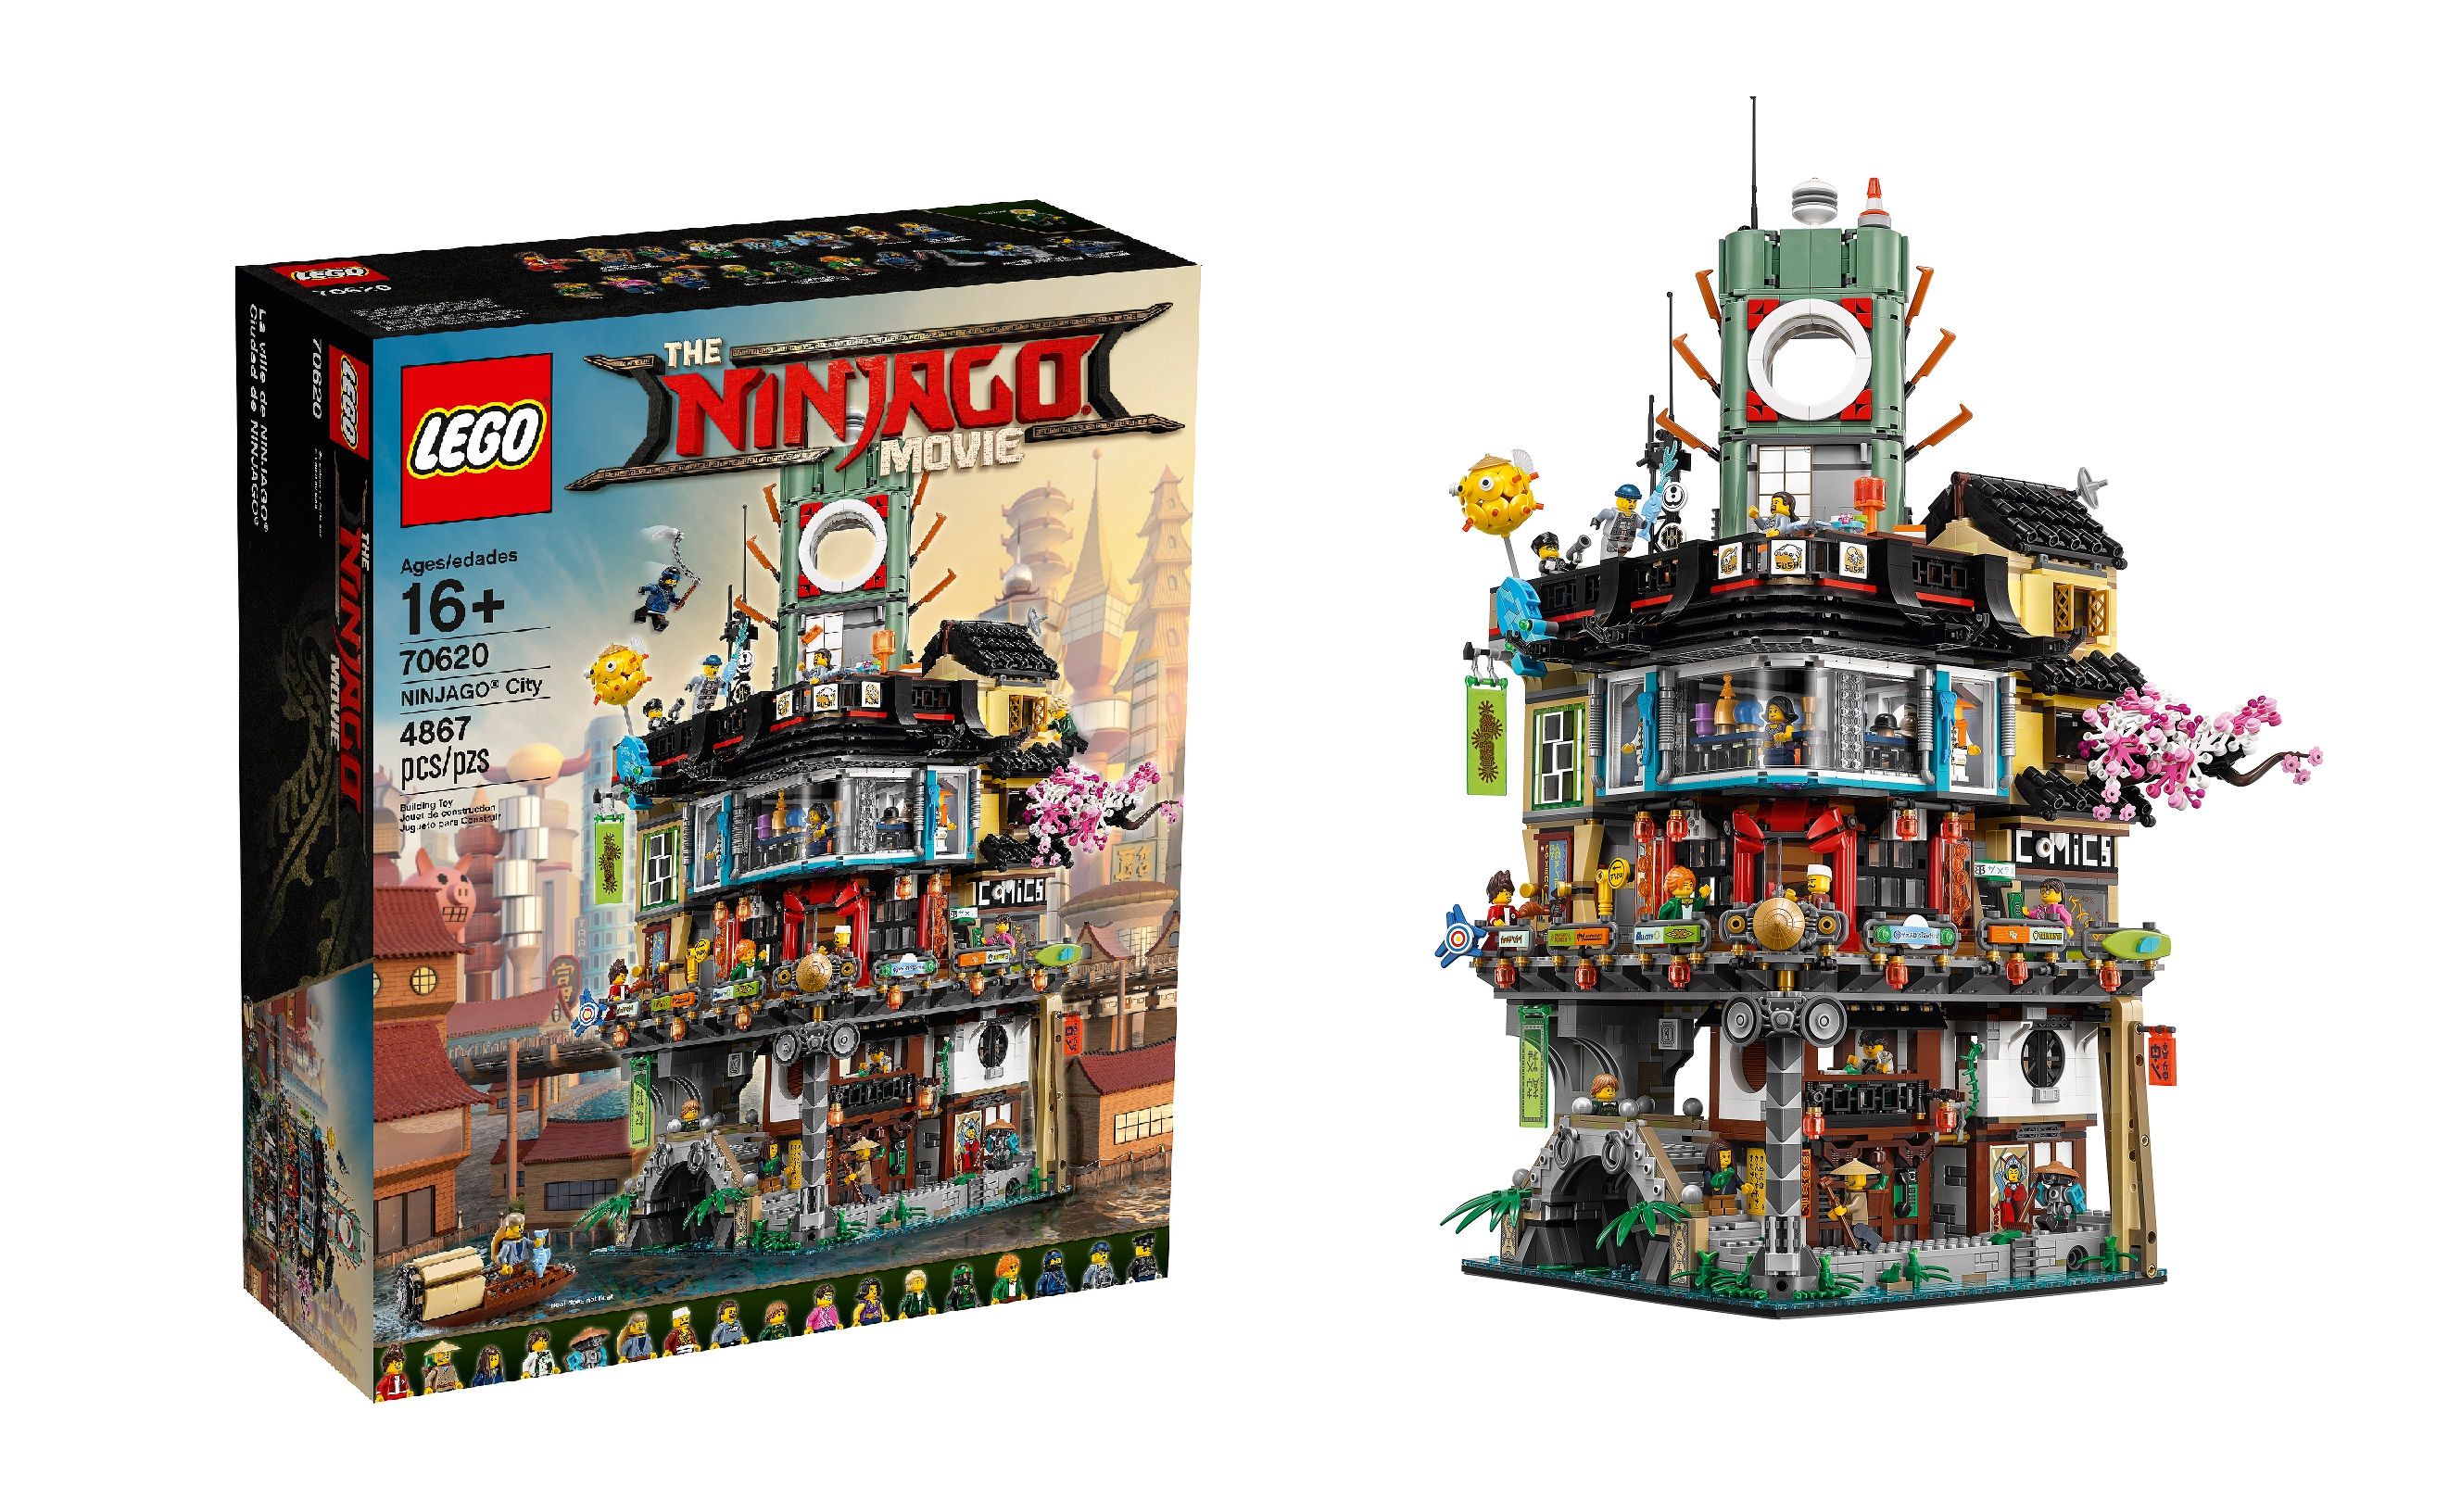 LEGO-70620-Ninjago-City-Feature-Image.jpg